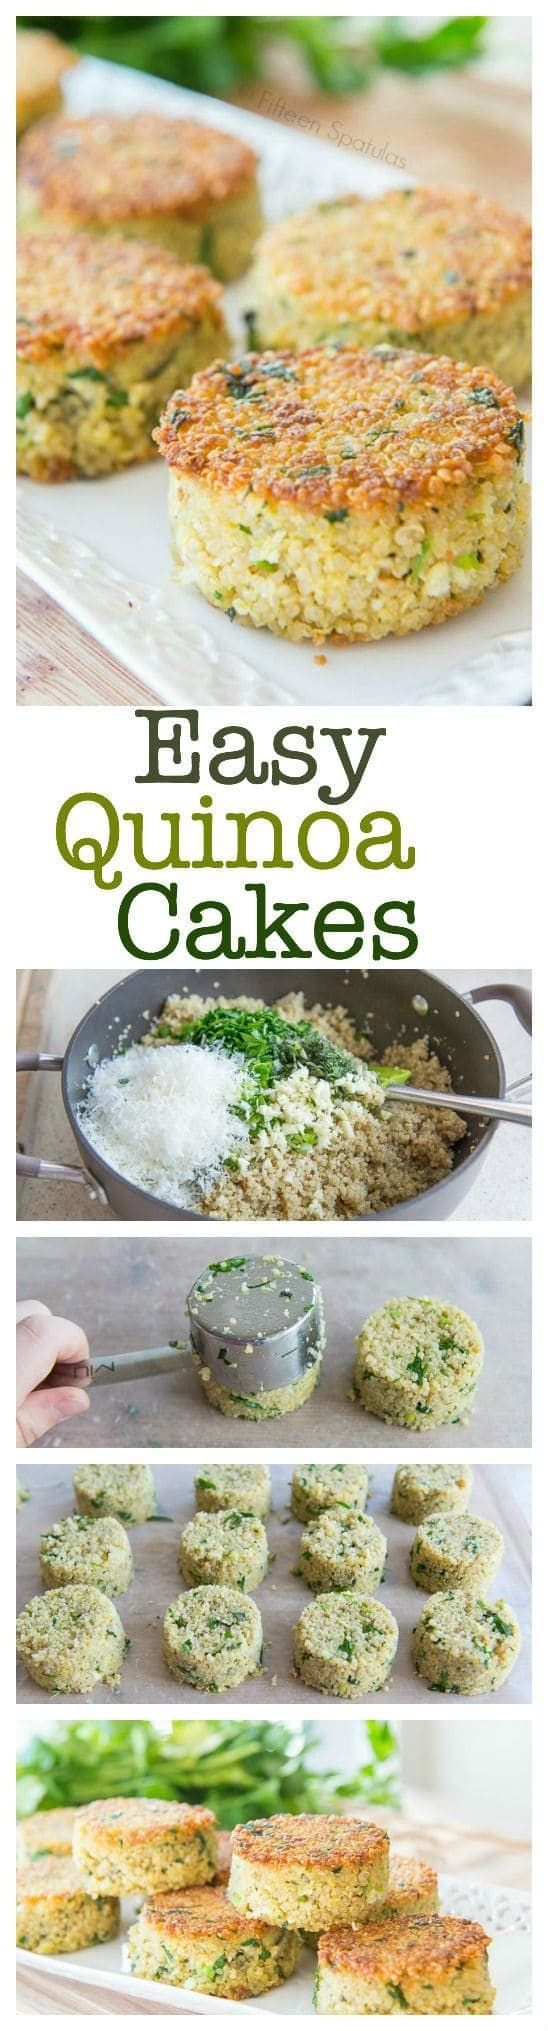 Easy Crispy Quinoa Cakes Recipe - Great side dish for lunch or dinner via @fifteenspatulas